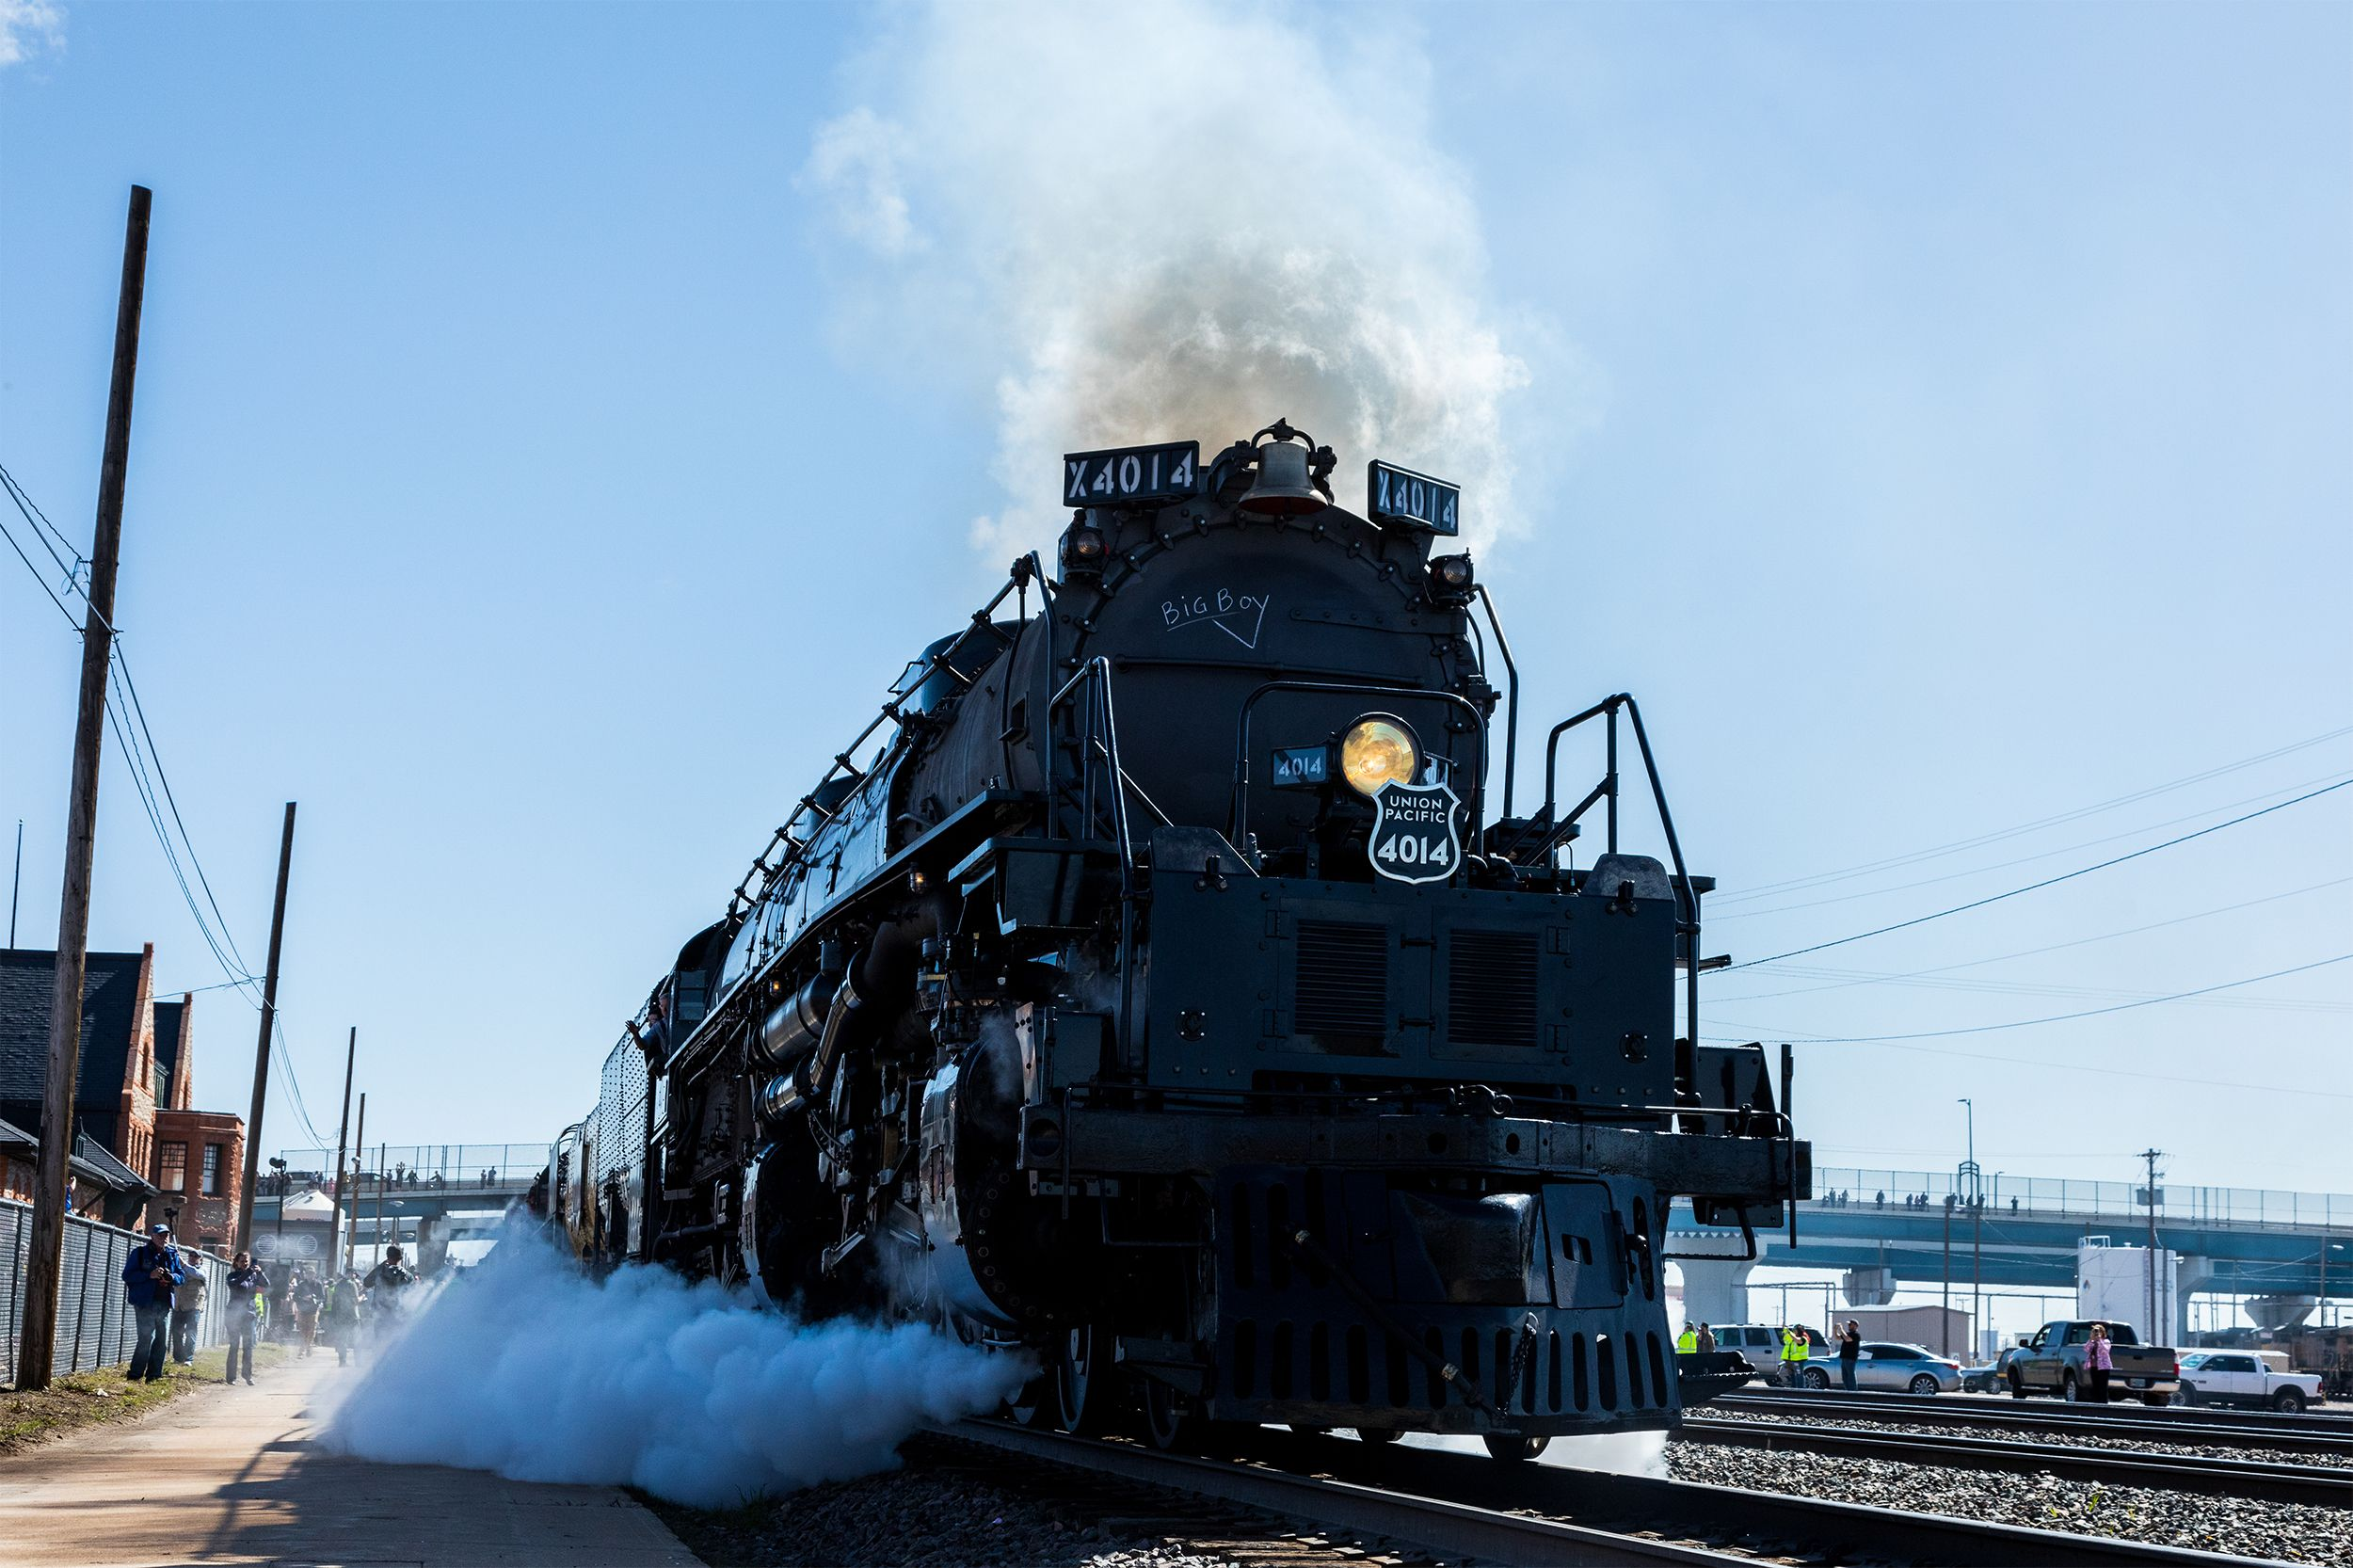 Why the Big Boy 4014 is Such a Badass Train